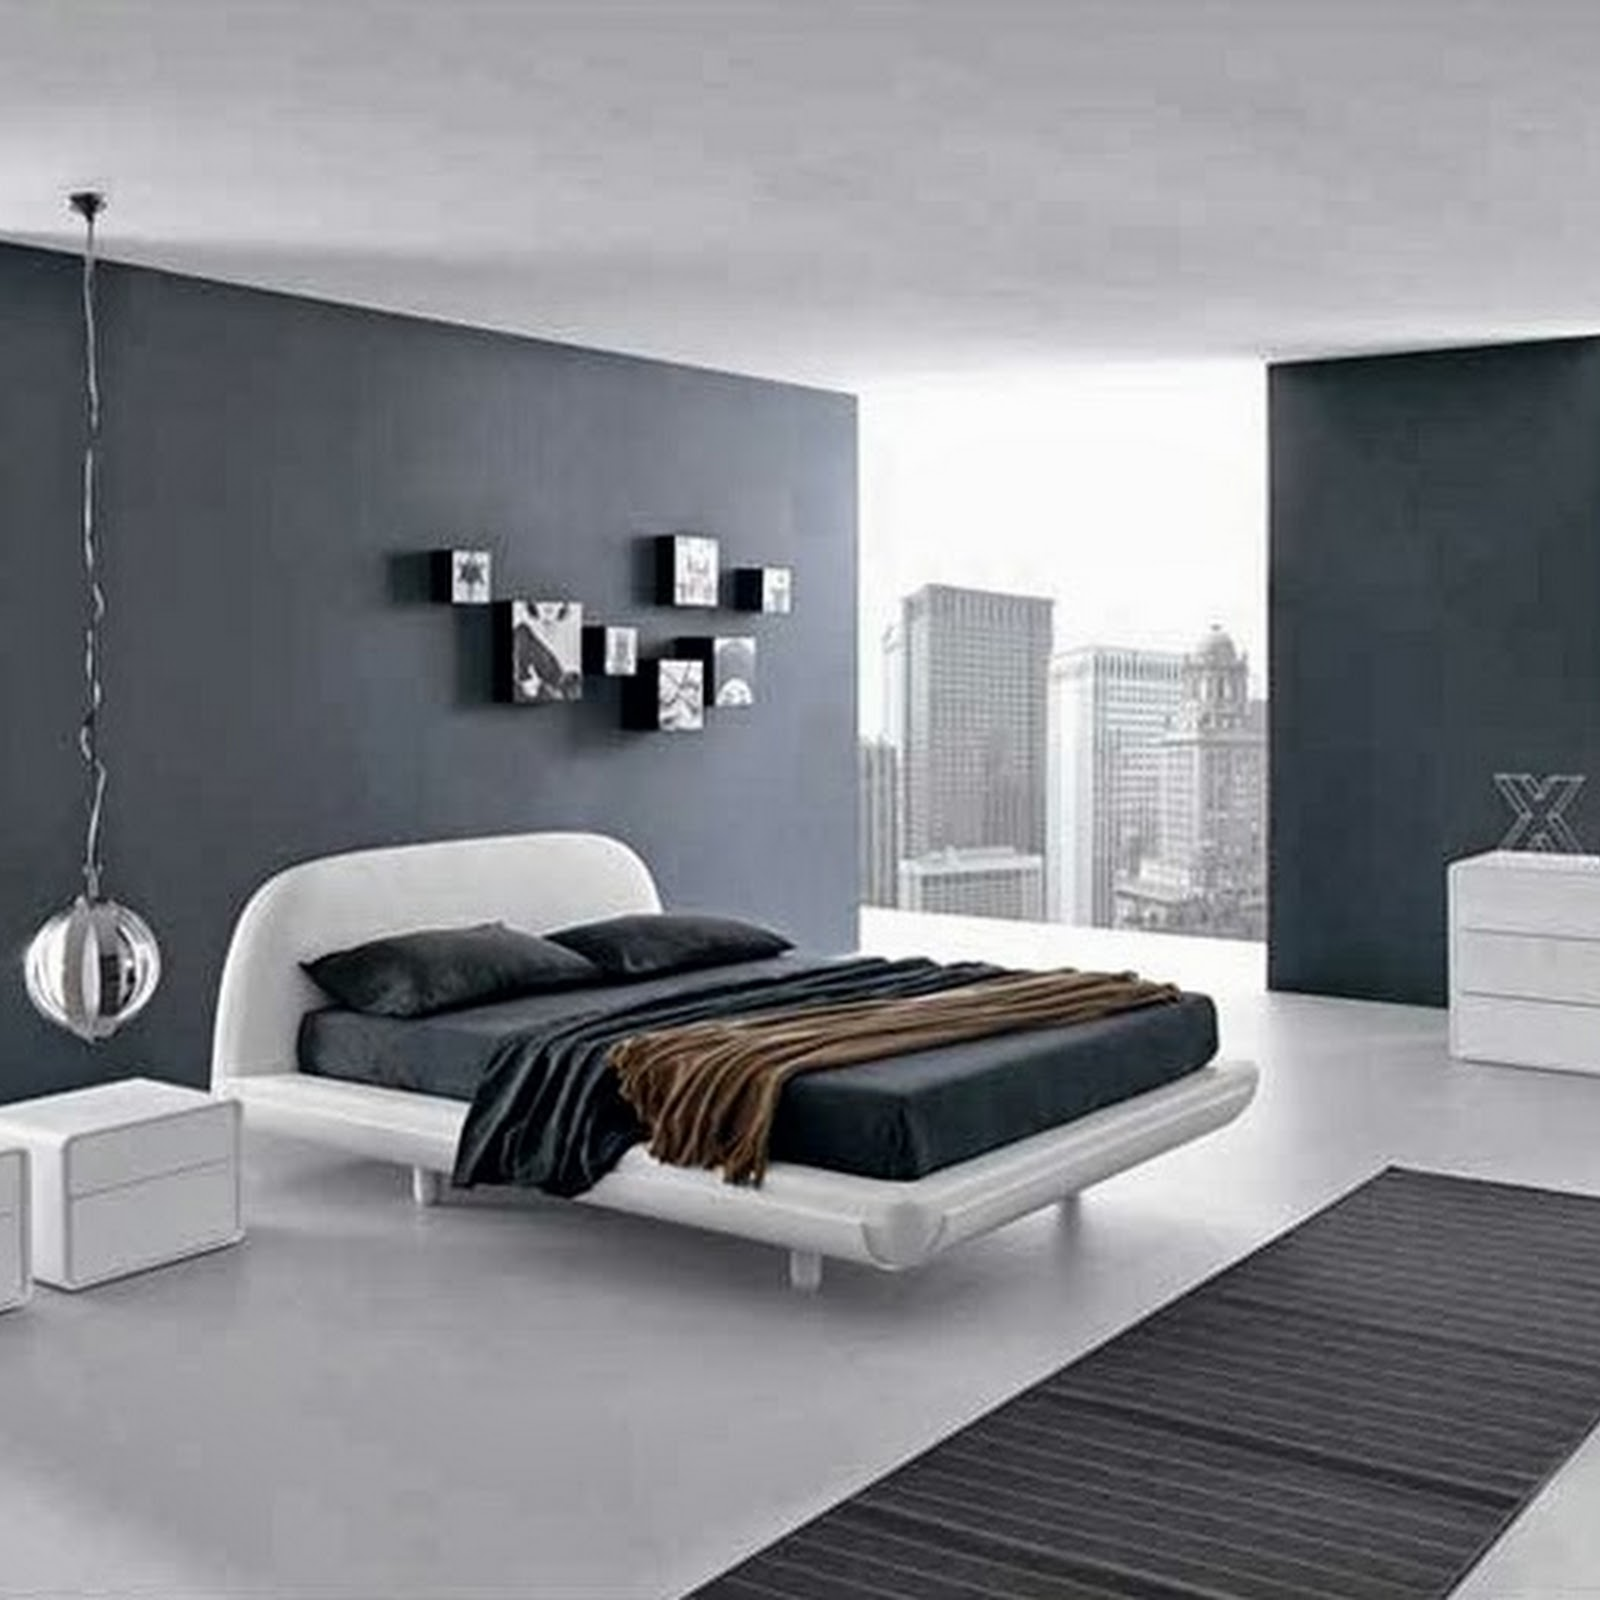 Best Bedroom Colors For Sleeping: Elegant Gray Paint Colors For Bedrooms HomesFeed